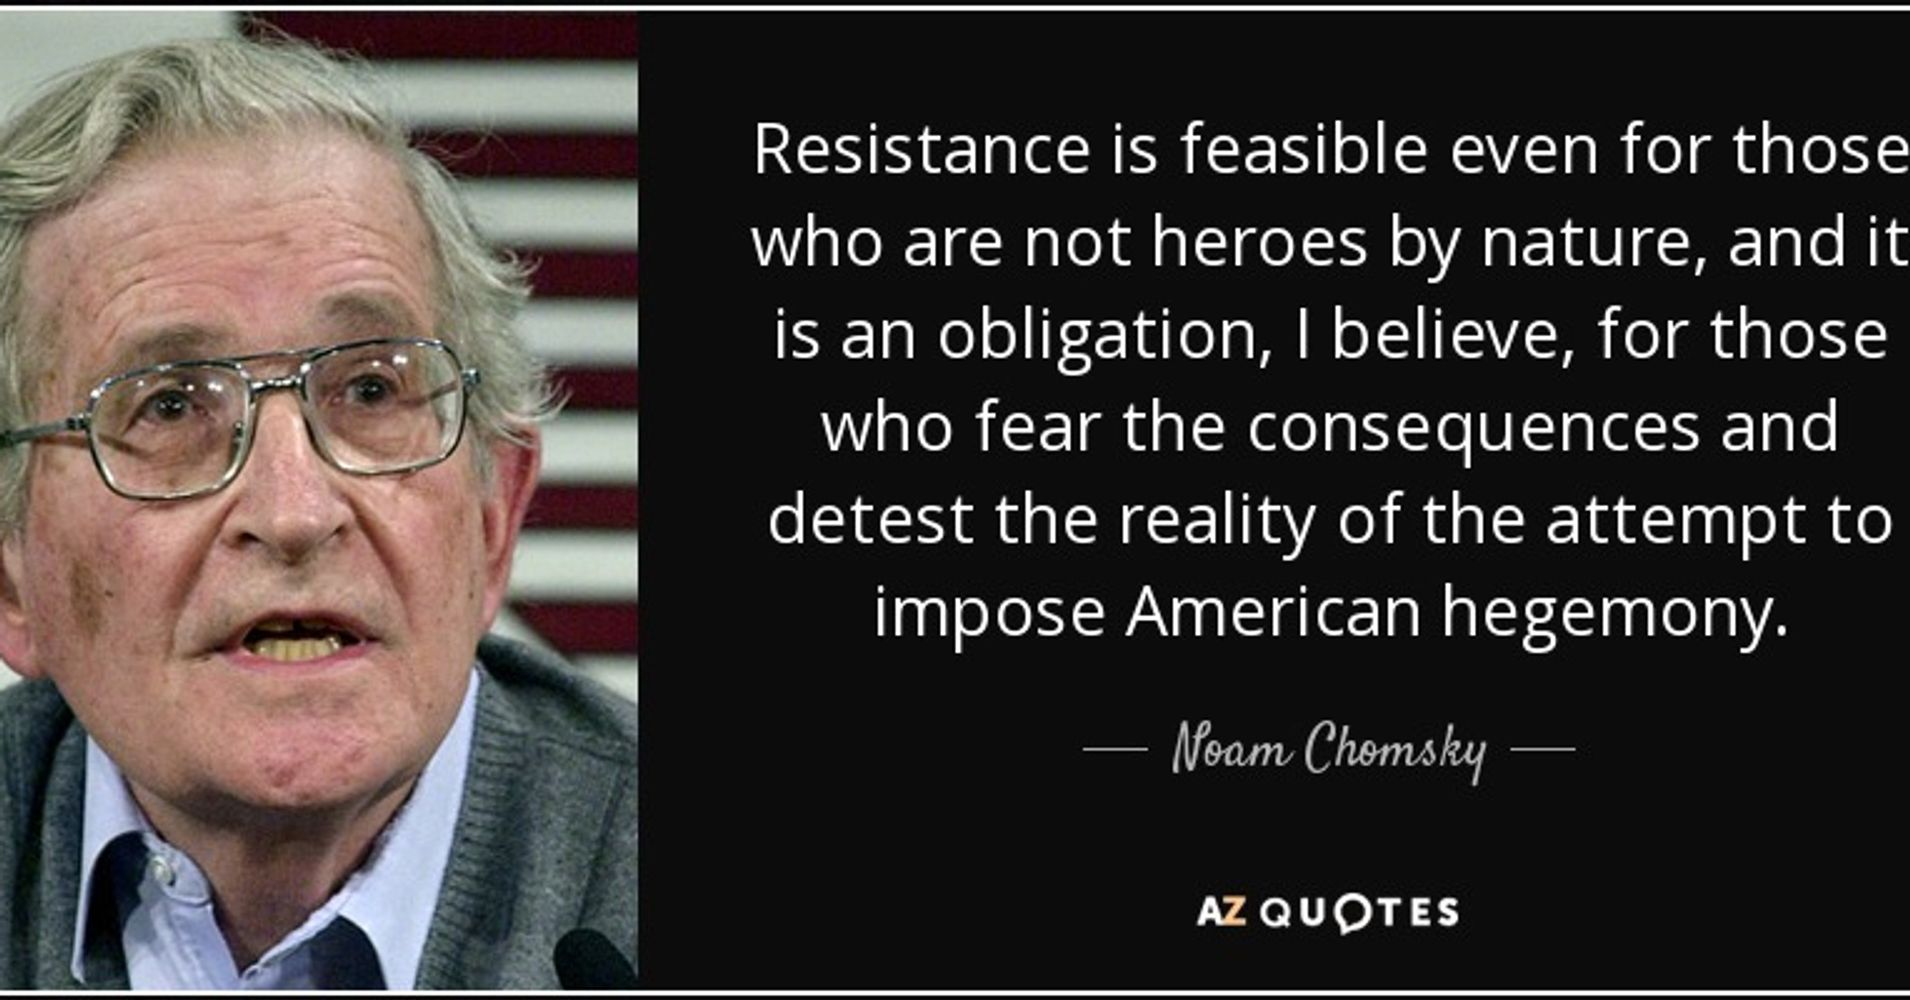 Az Quotes 5 Resistance Resolutions  Huffpost